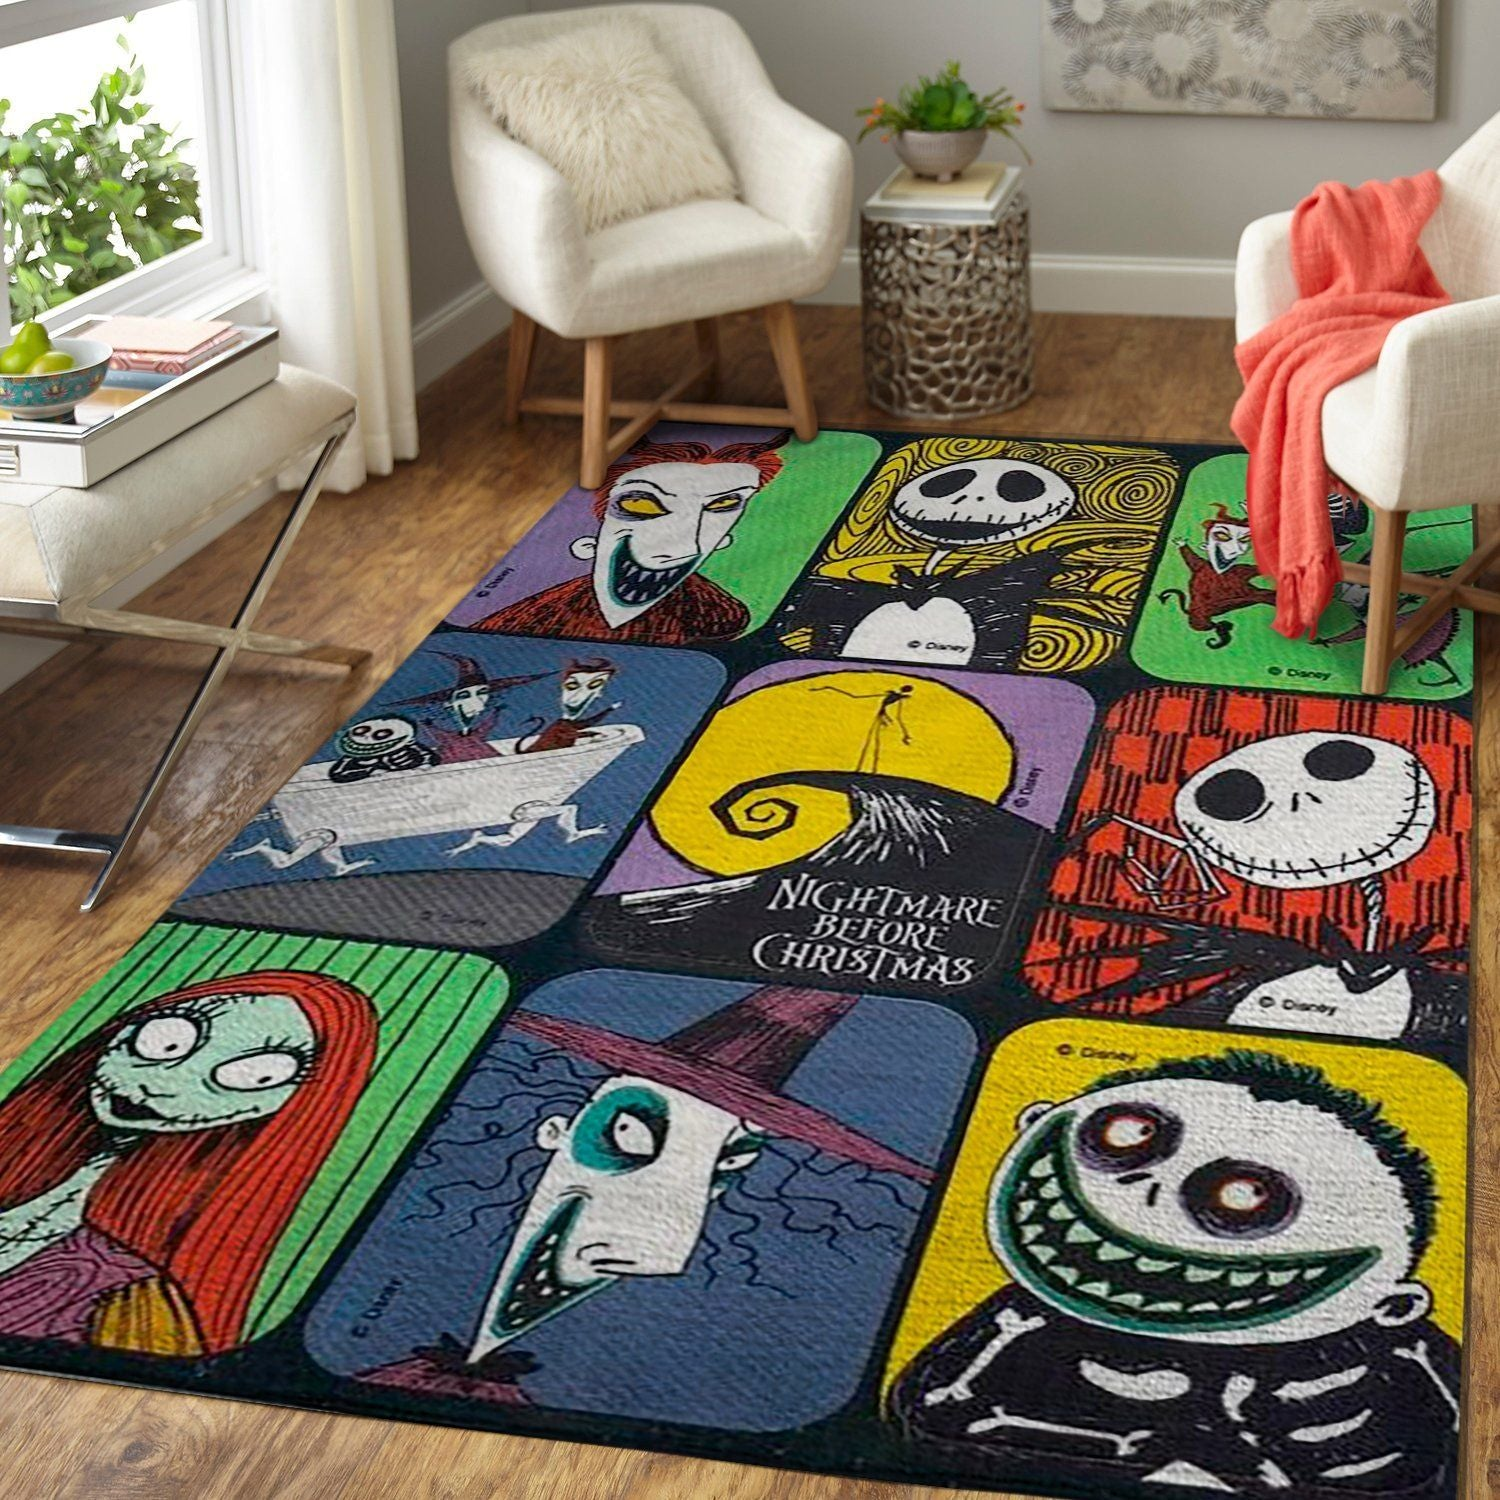 The Nightmare Before Christmas Movie Characters Area Rug Floor Decor -Halloween Special